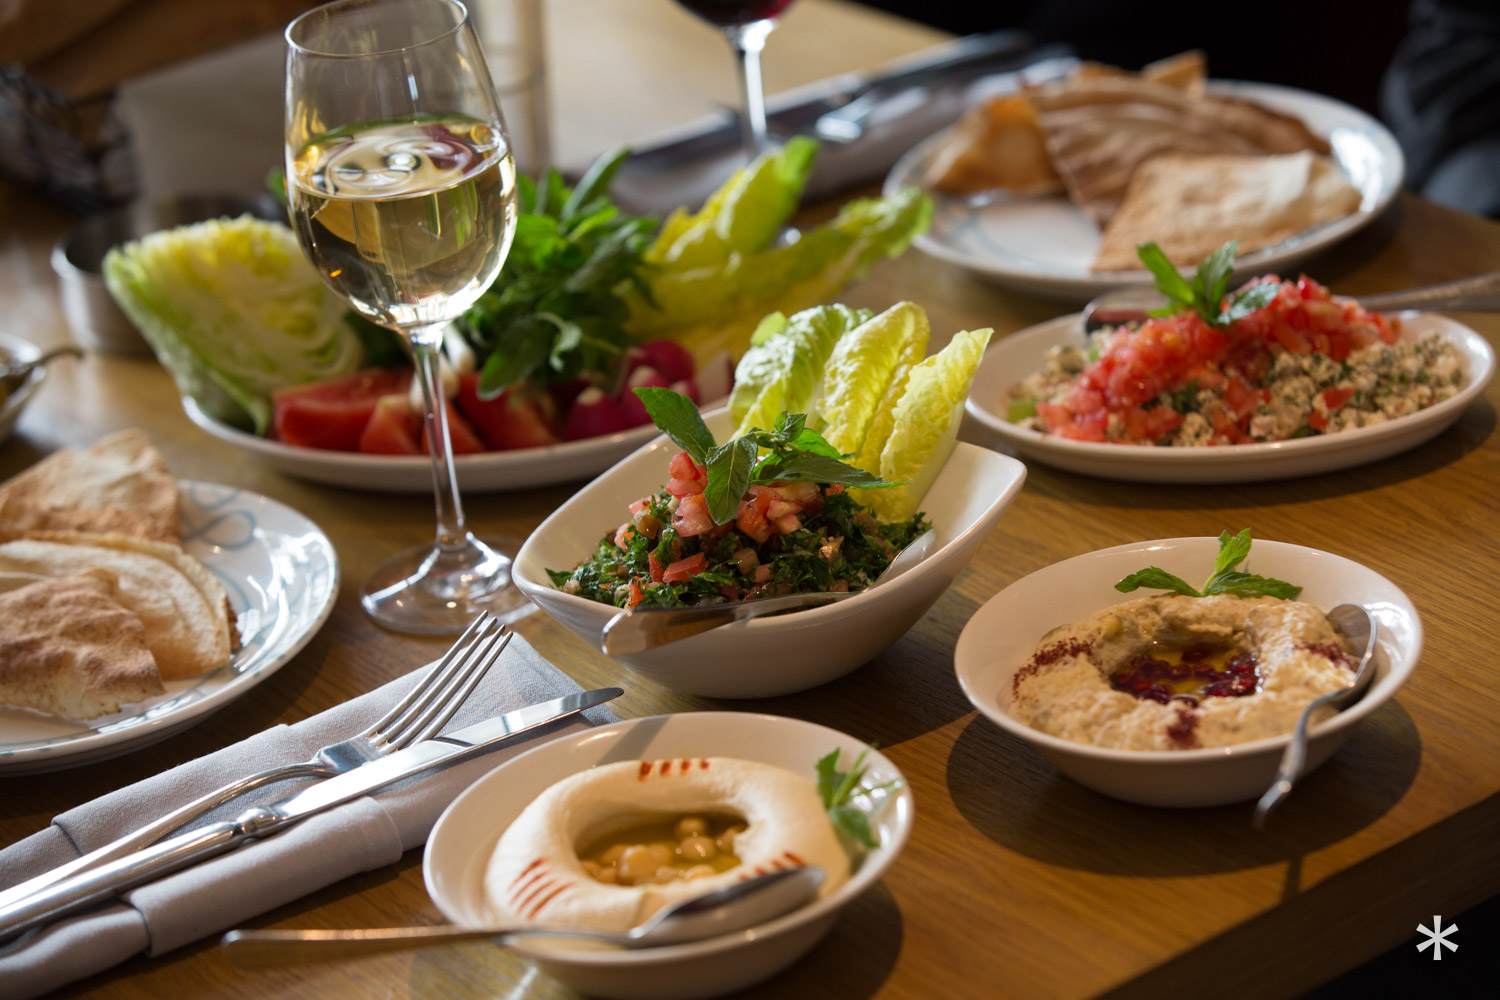 meze, authentic, Lebanese restaurant, Lebanese cuisine, Lebanese food, delivery, London, UK, abdelwahab.co.uk